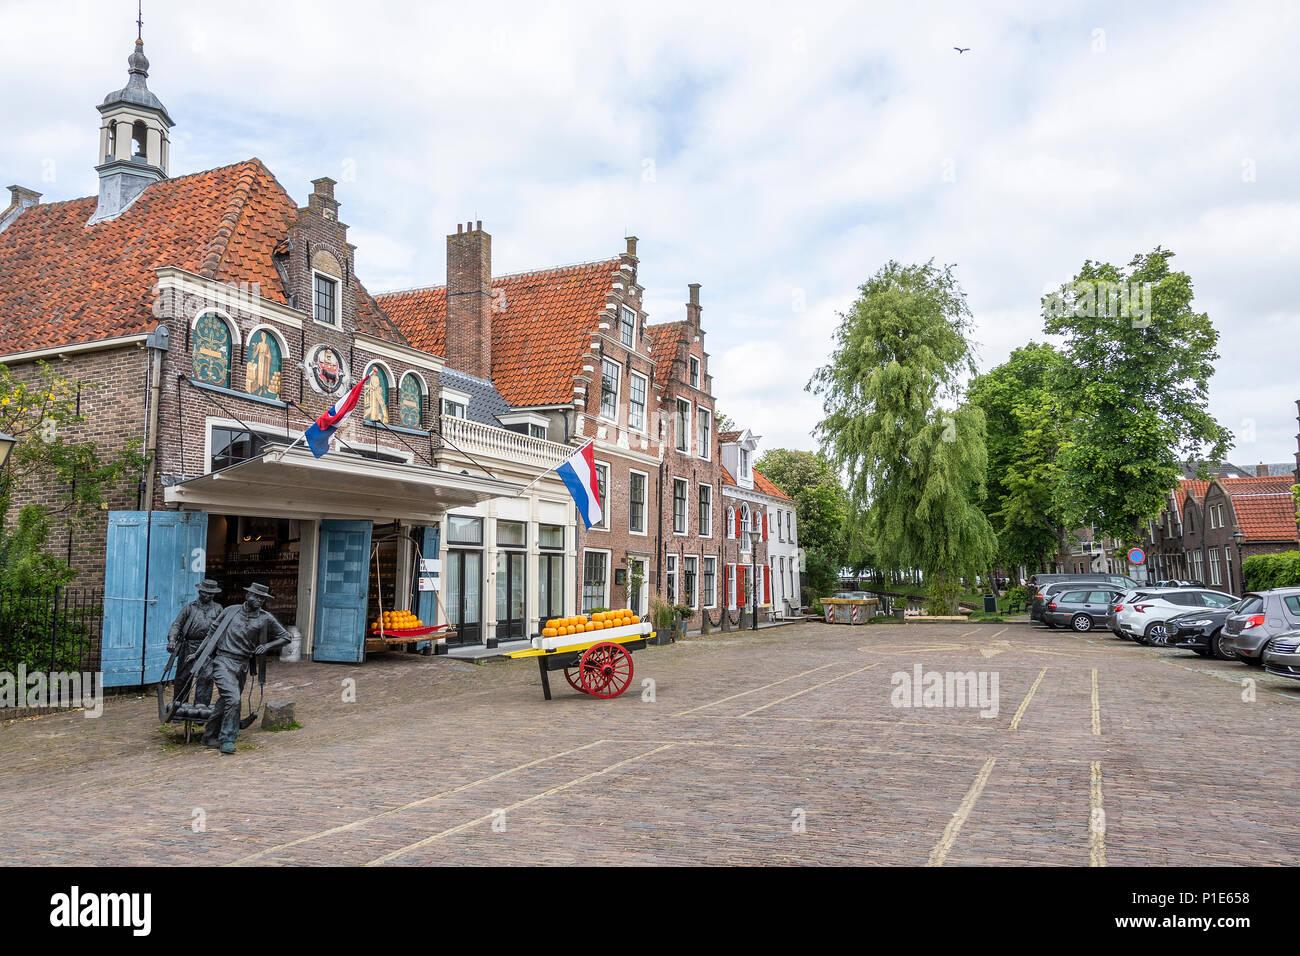 square with its traditional cheeses and houses and in the background a canal in the village of edam. netherlands - Stock Image